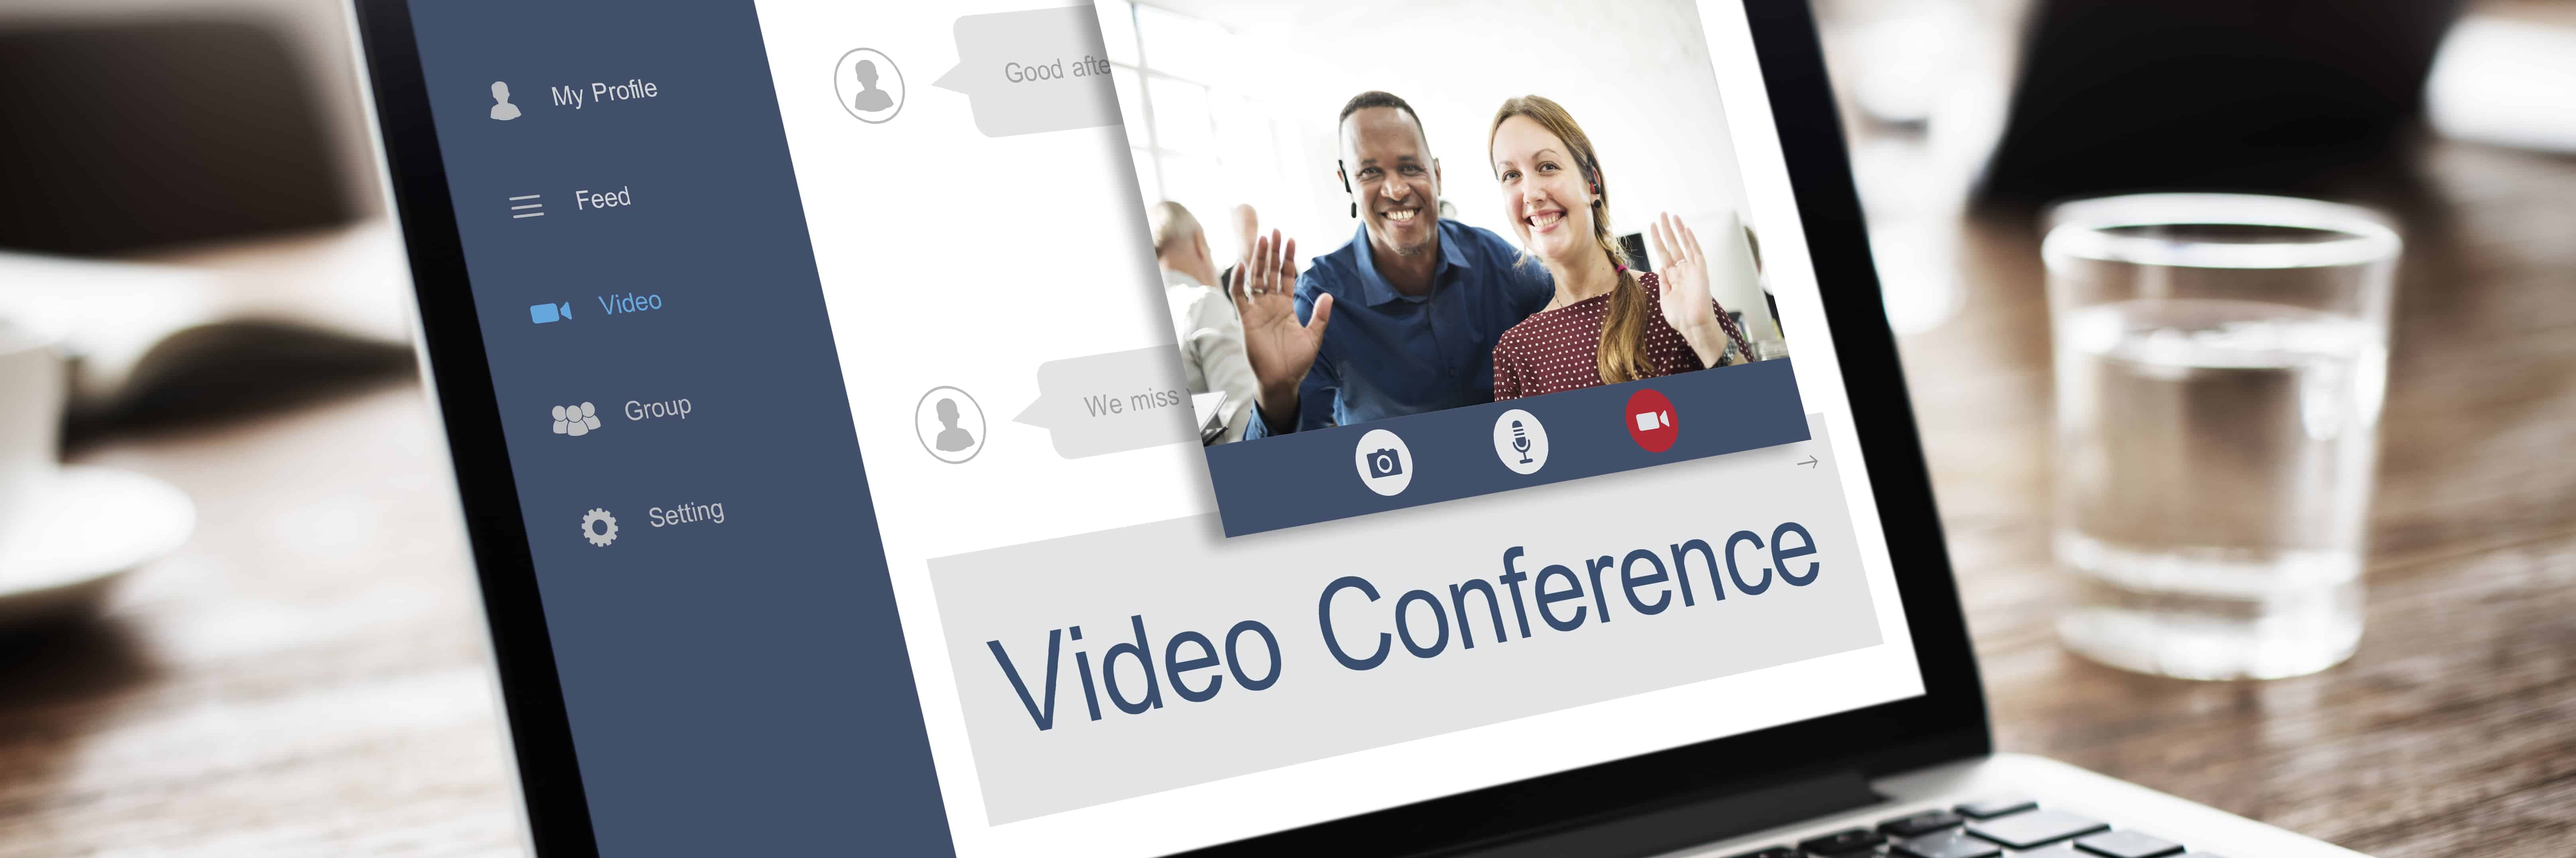 Online video consulations can be done via video conferencing on a laptop